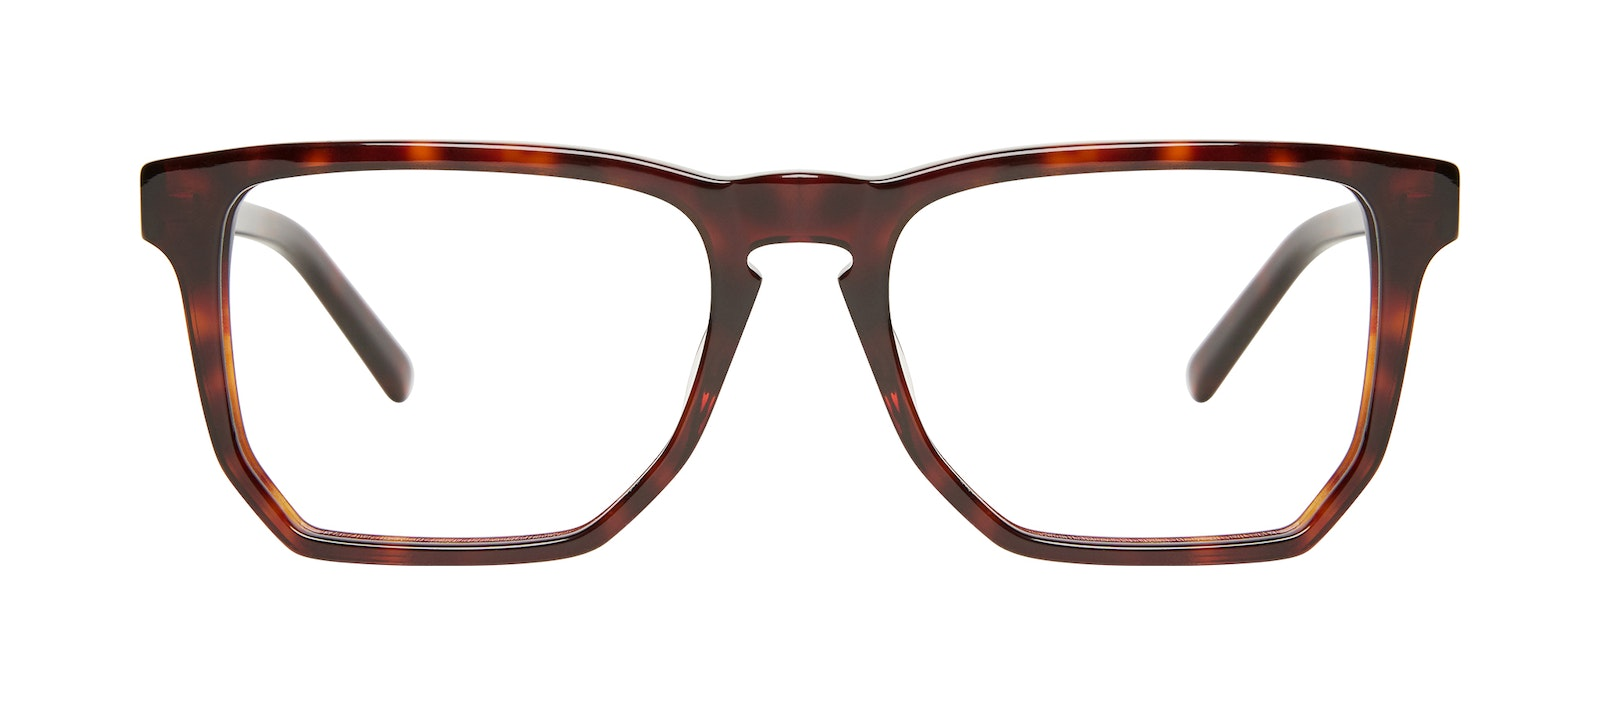 Affordable Fashion Glasses Square Eyeglasses Men Andy Tortoise Front